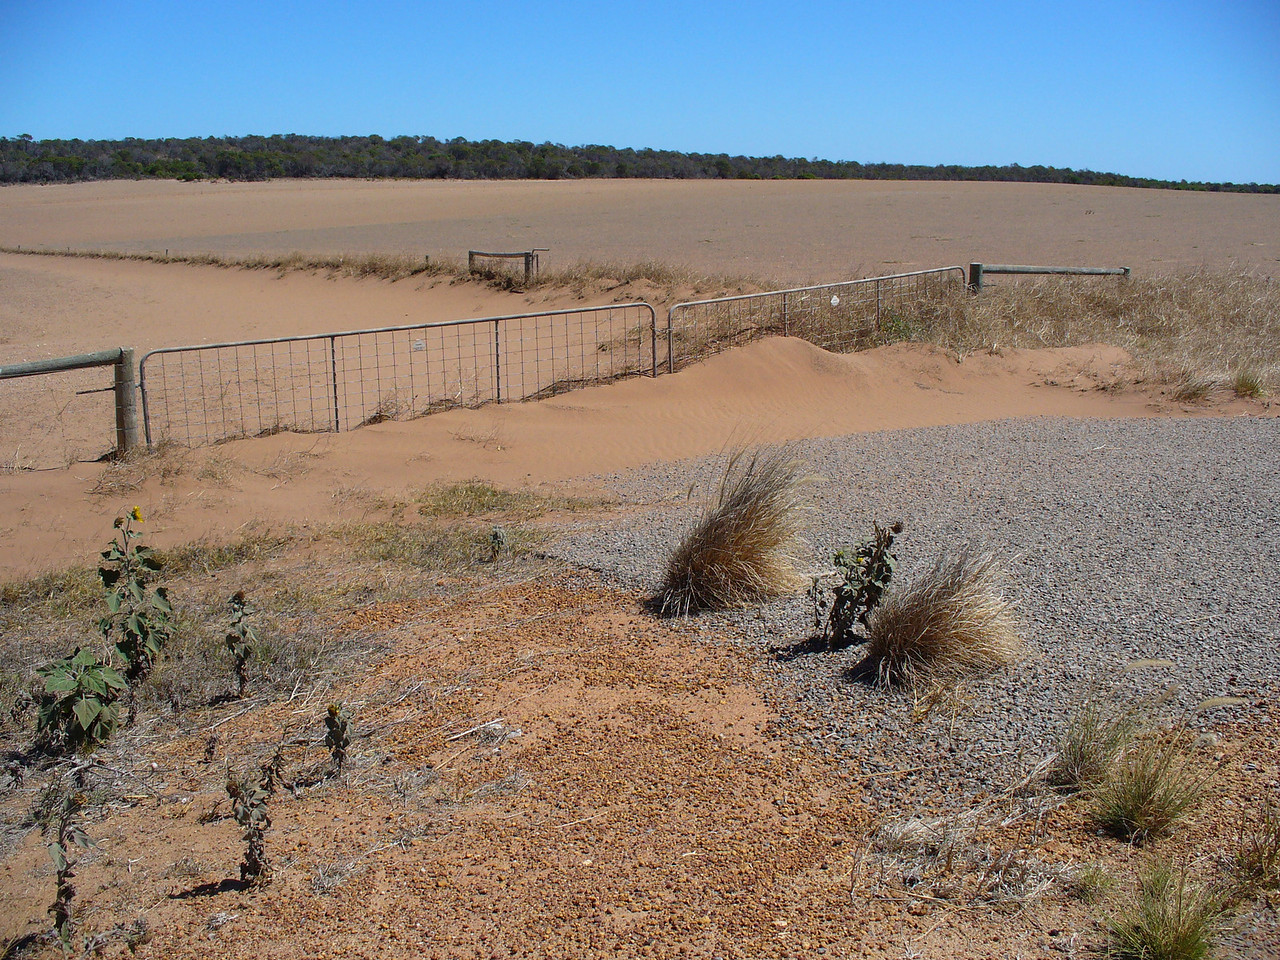 Drought ravaged paddocks near home, march 2007